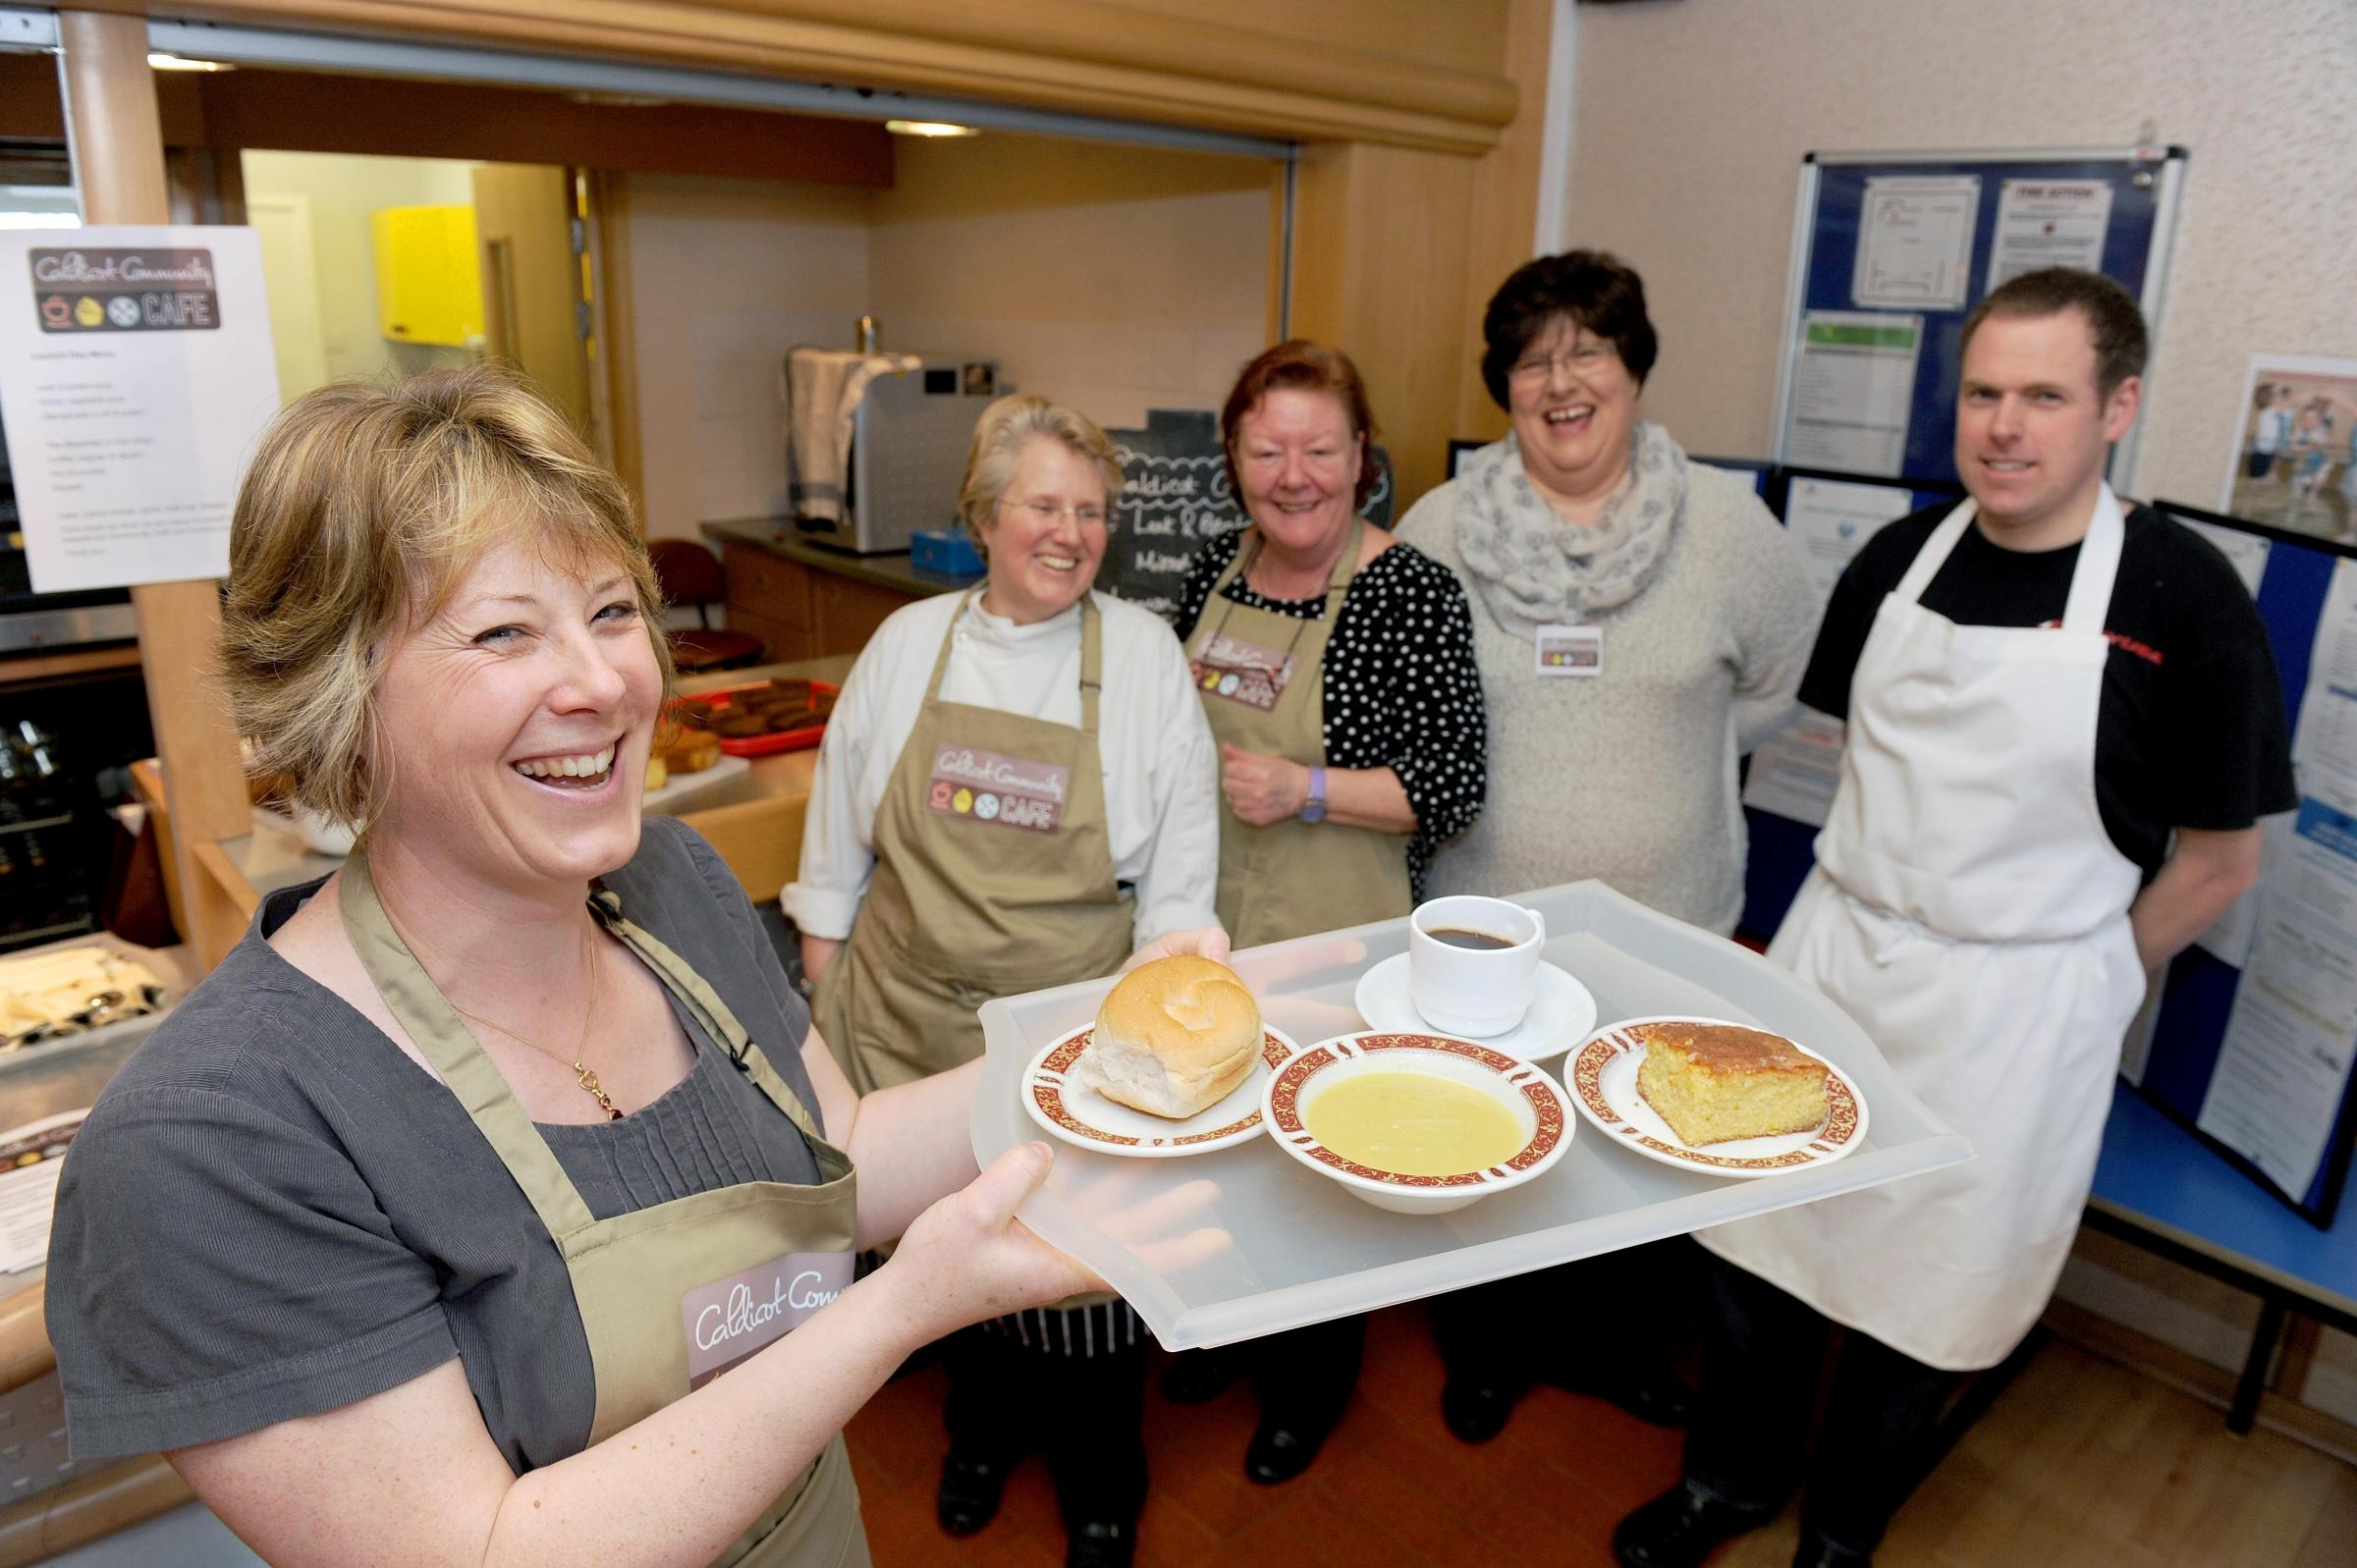 Community cafe opened in Caldicot